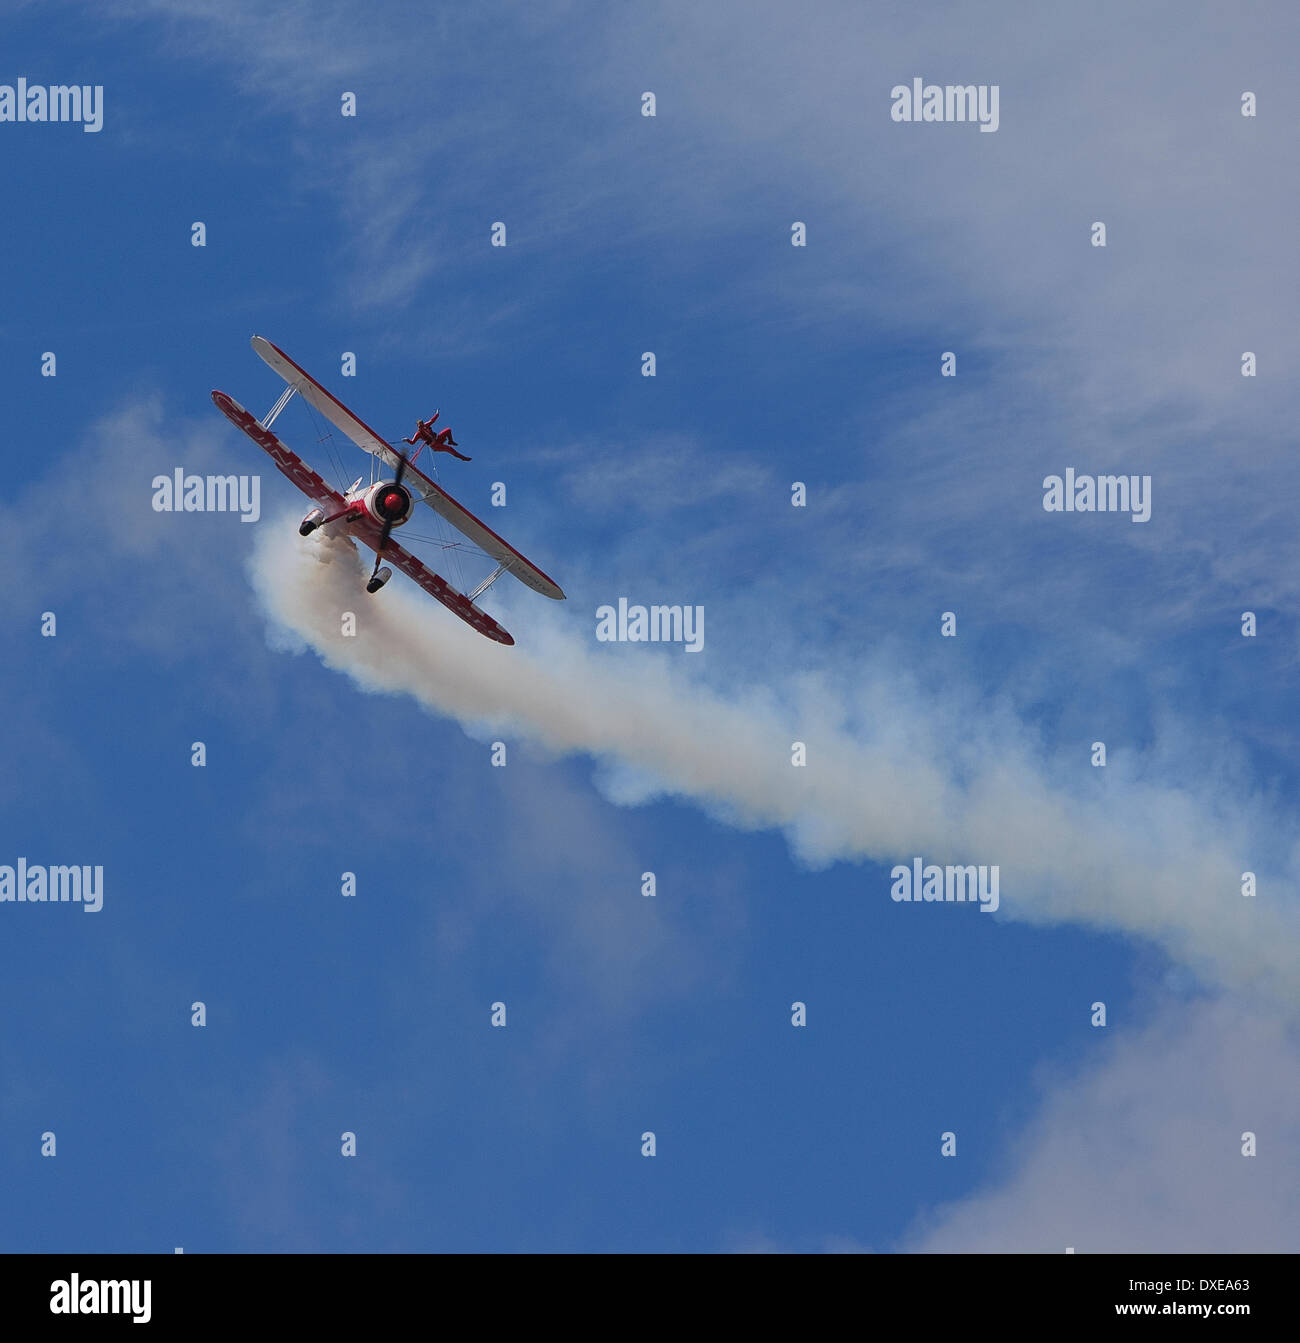 A Wing walker on a single engine bi-plane at an airshow in britain. - Stock Image